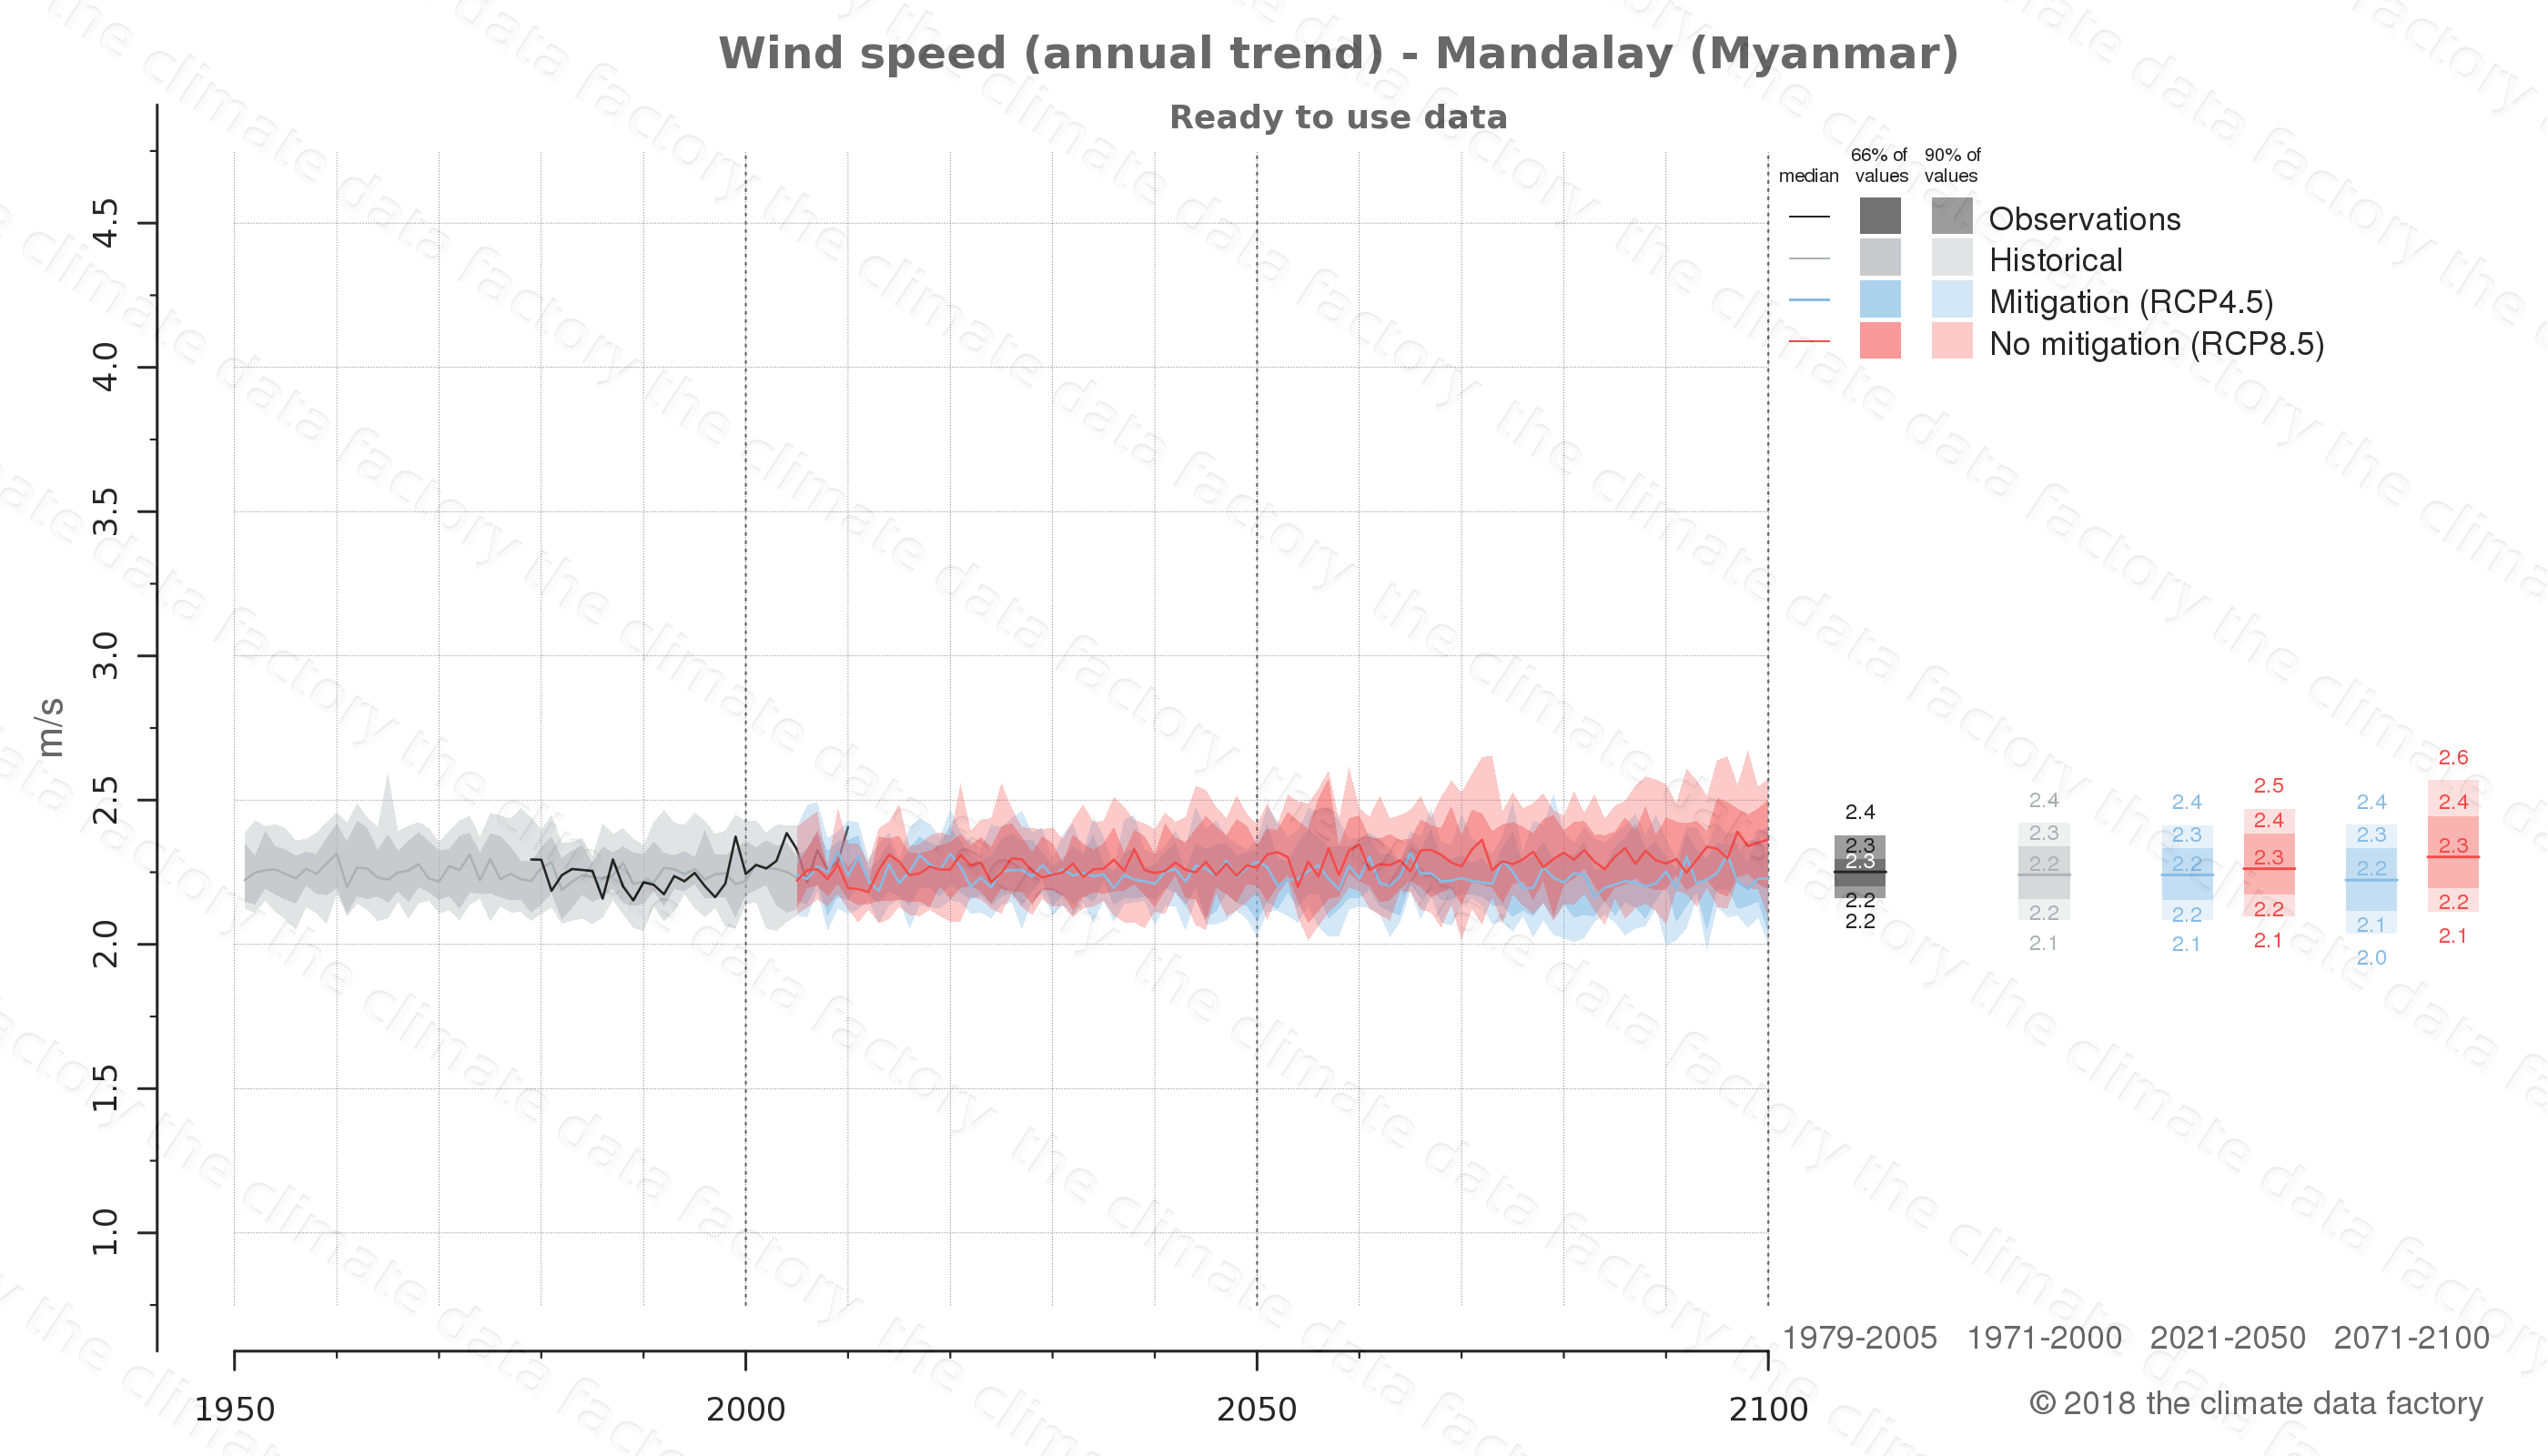 climate change data policy adaptation climate graph city data wind-speed mandalay myanmar